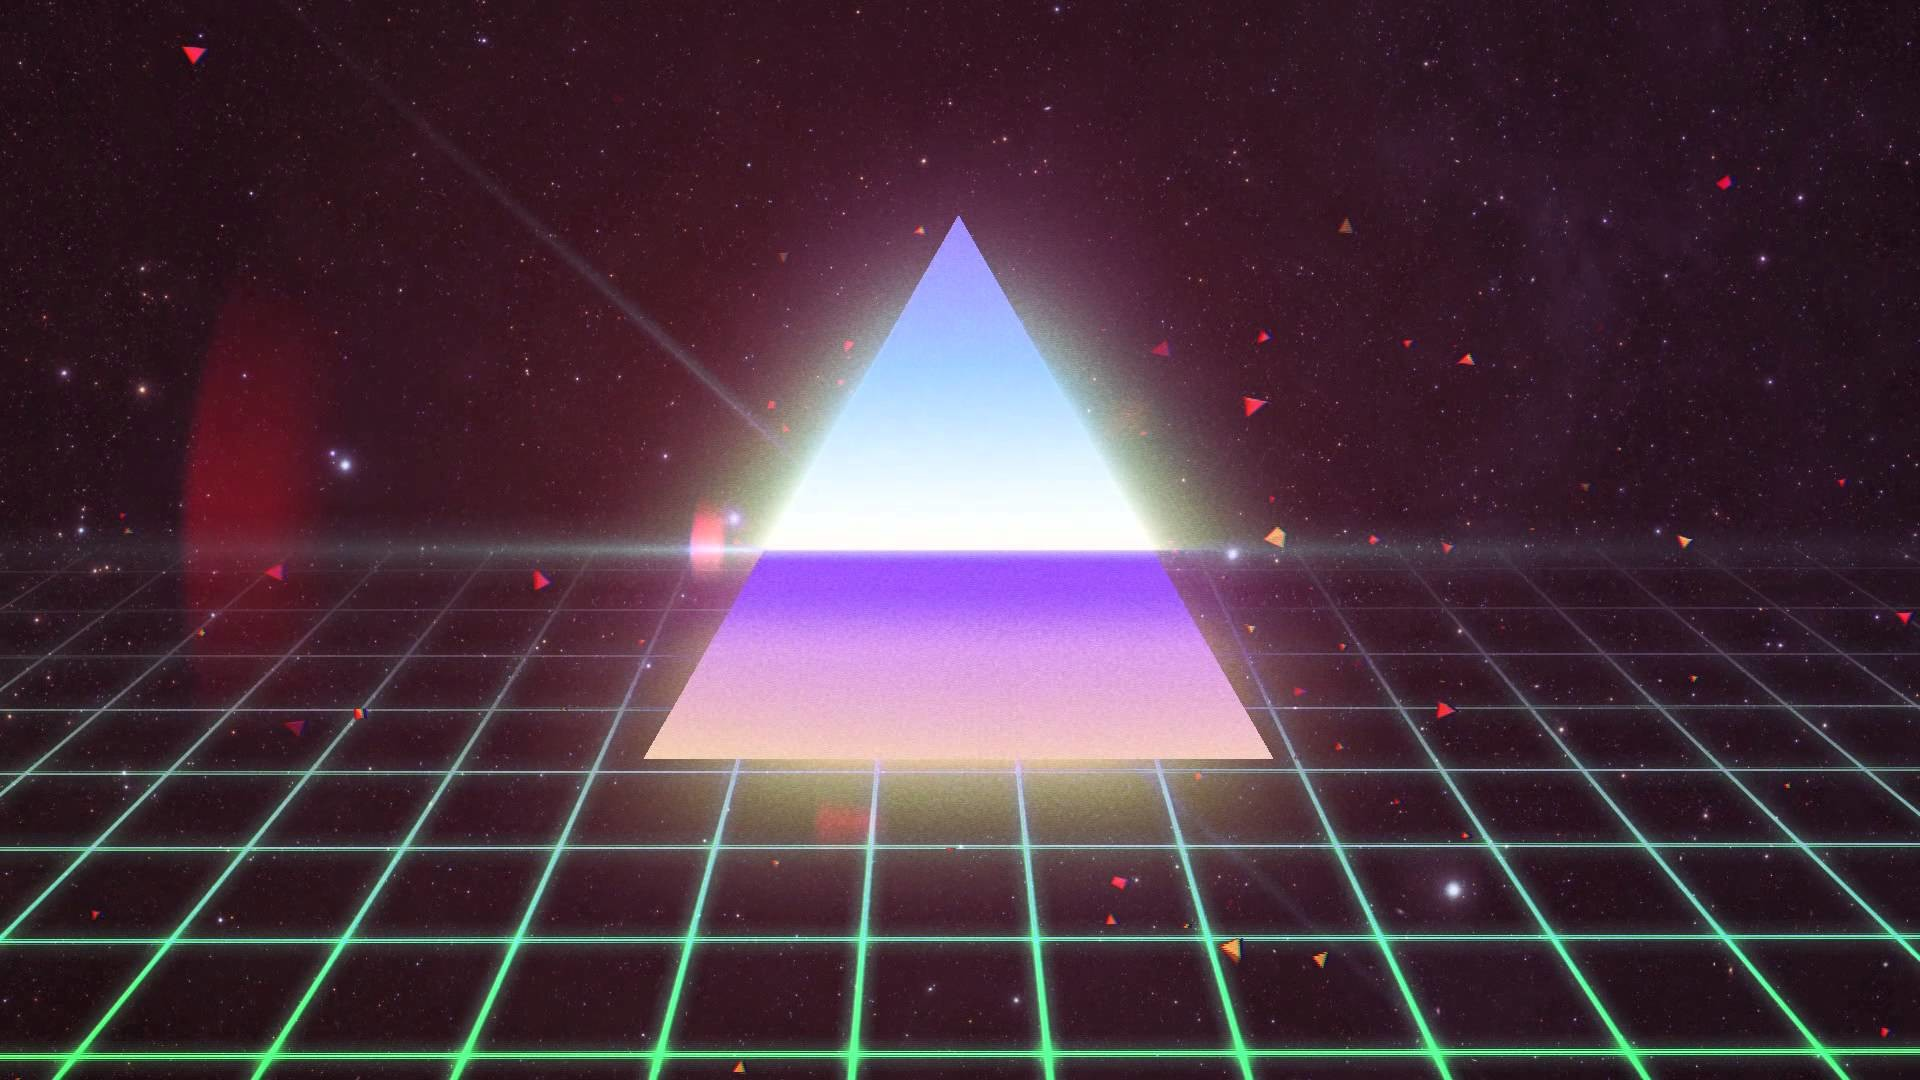 1920x1080 General 1980s Synthwave Wolf Triangle Grid Retro Style Neon Hotline Miami 2